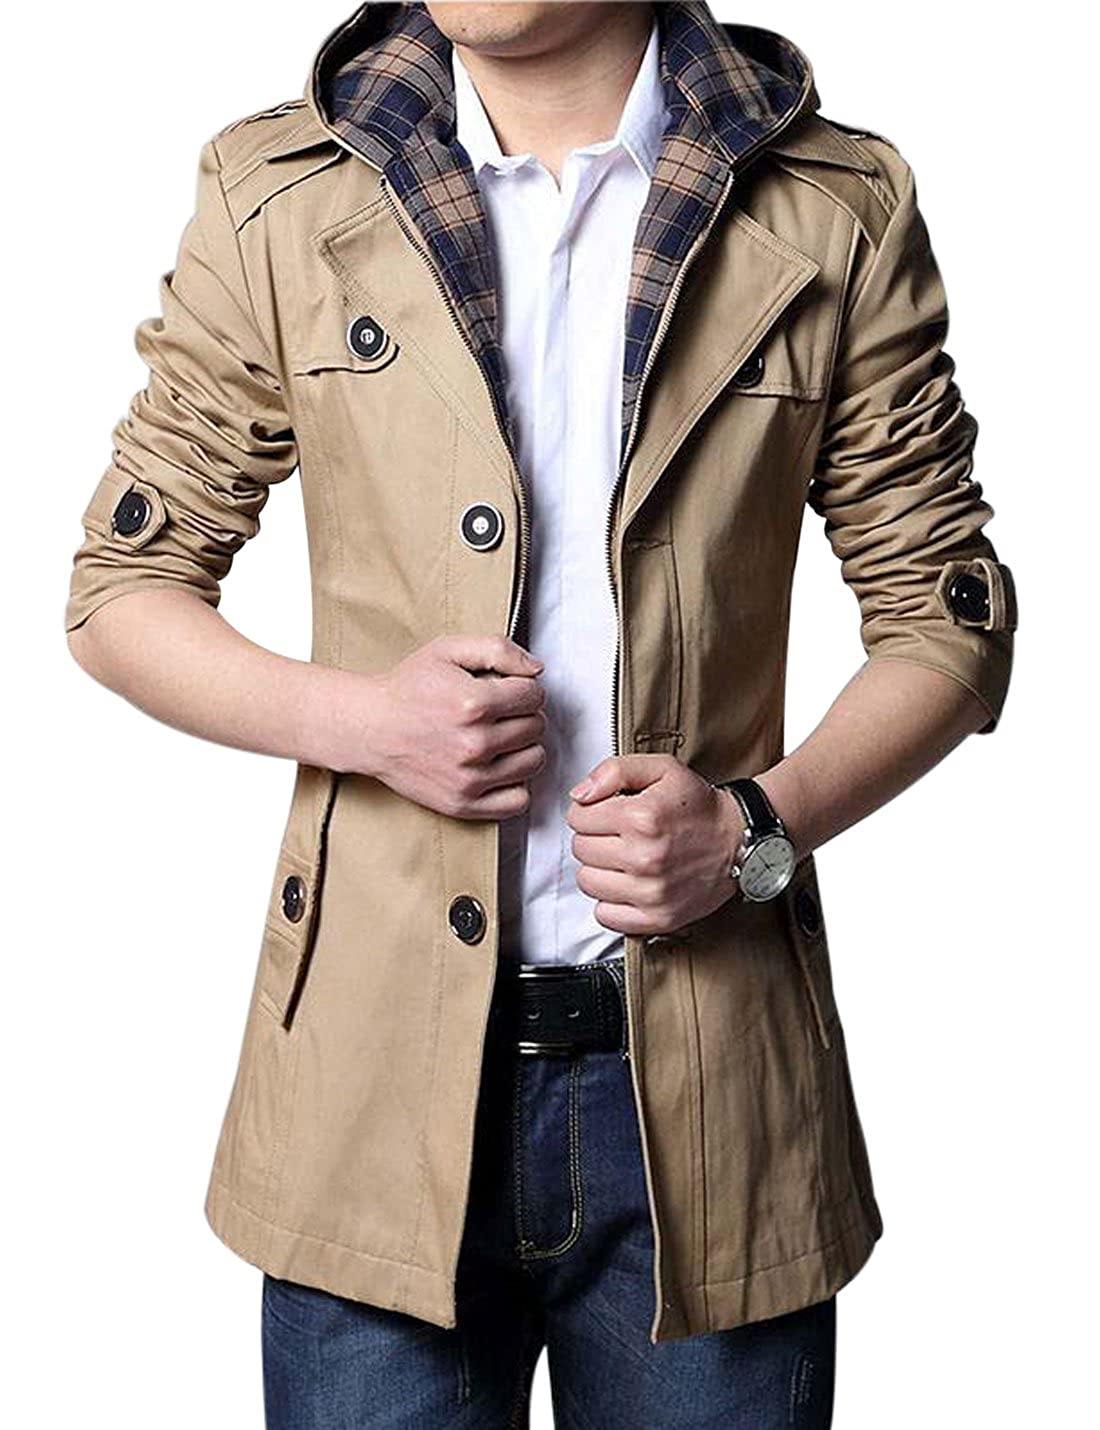 Yeokou Men's Casual Lightweight Cotton Slim Mid Long Hoodie Jacket Trench Coat